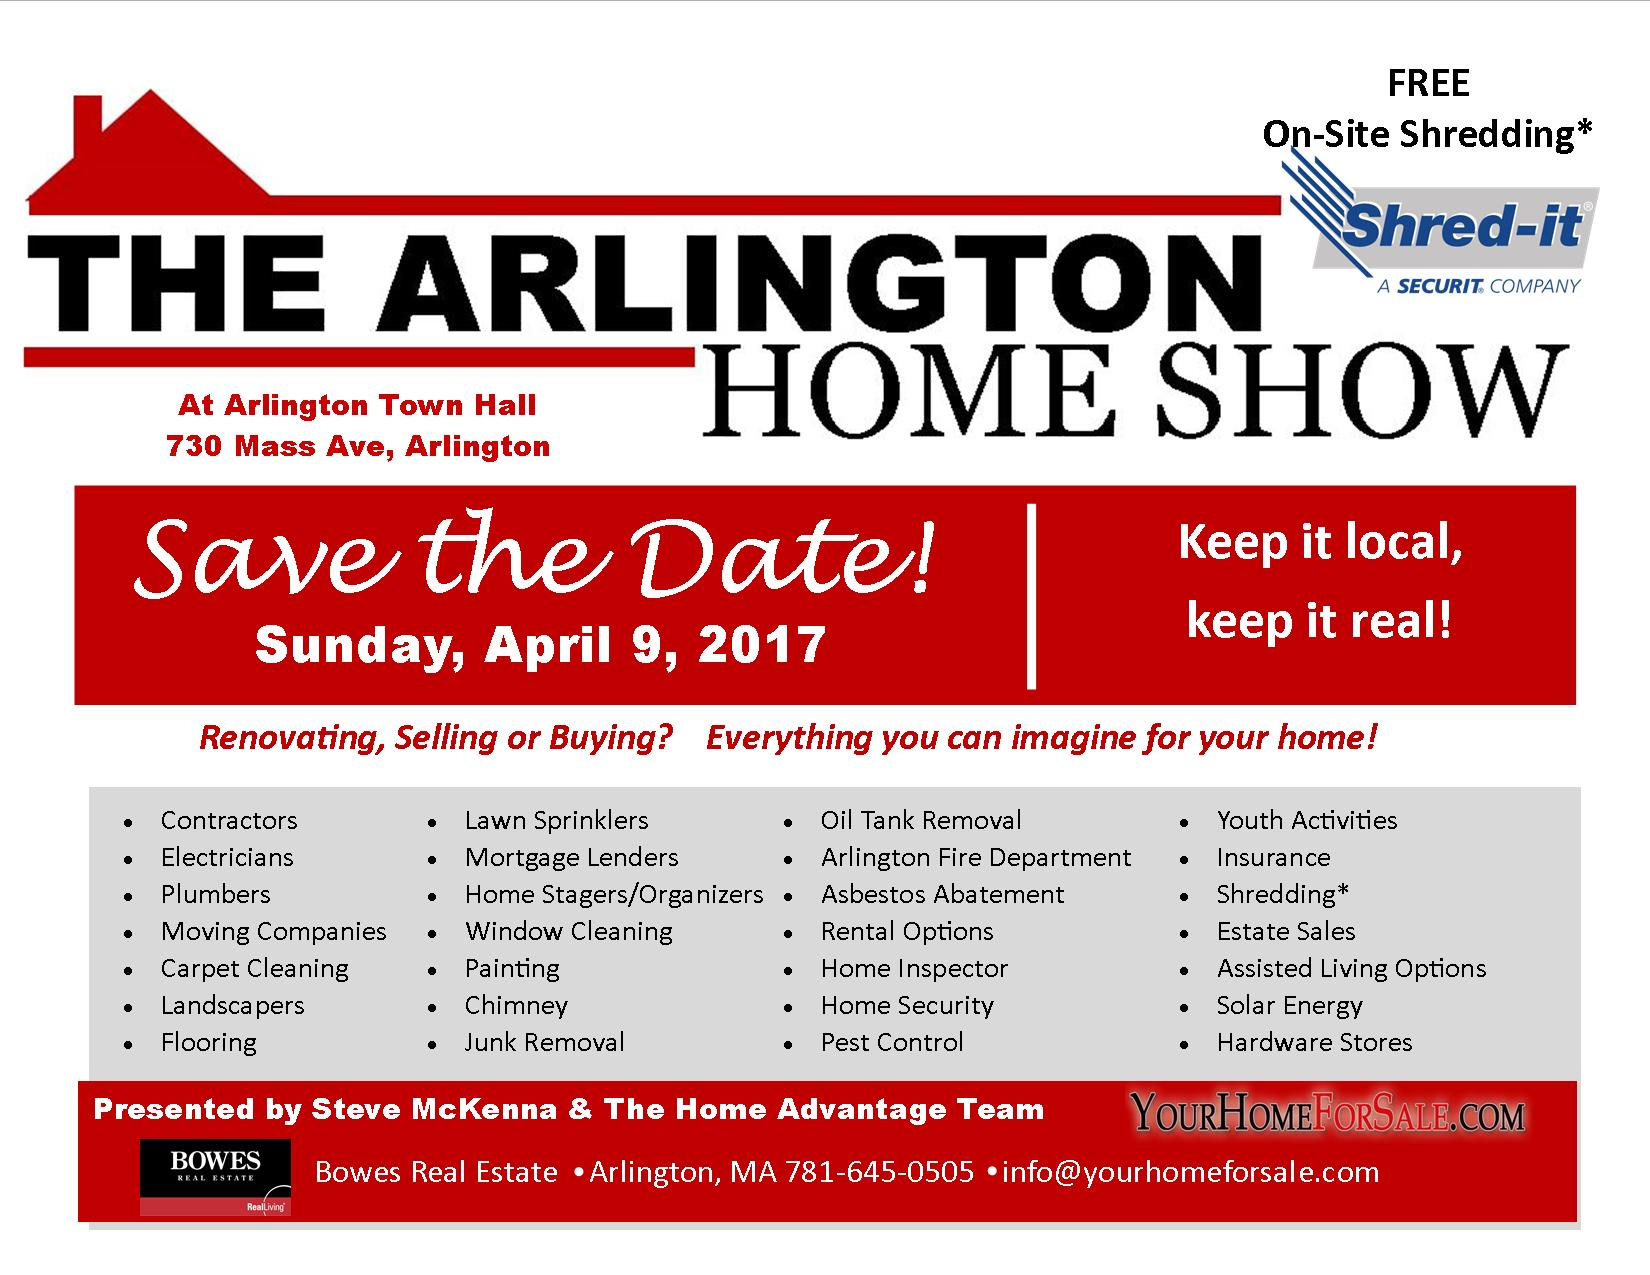 The Arlington Home Show